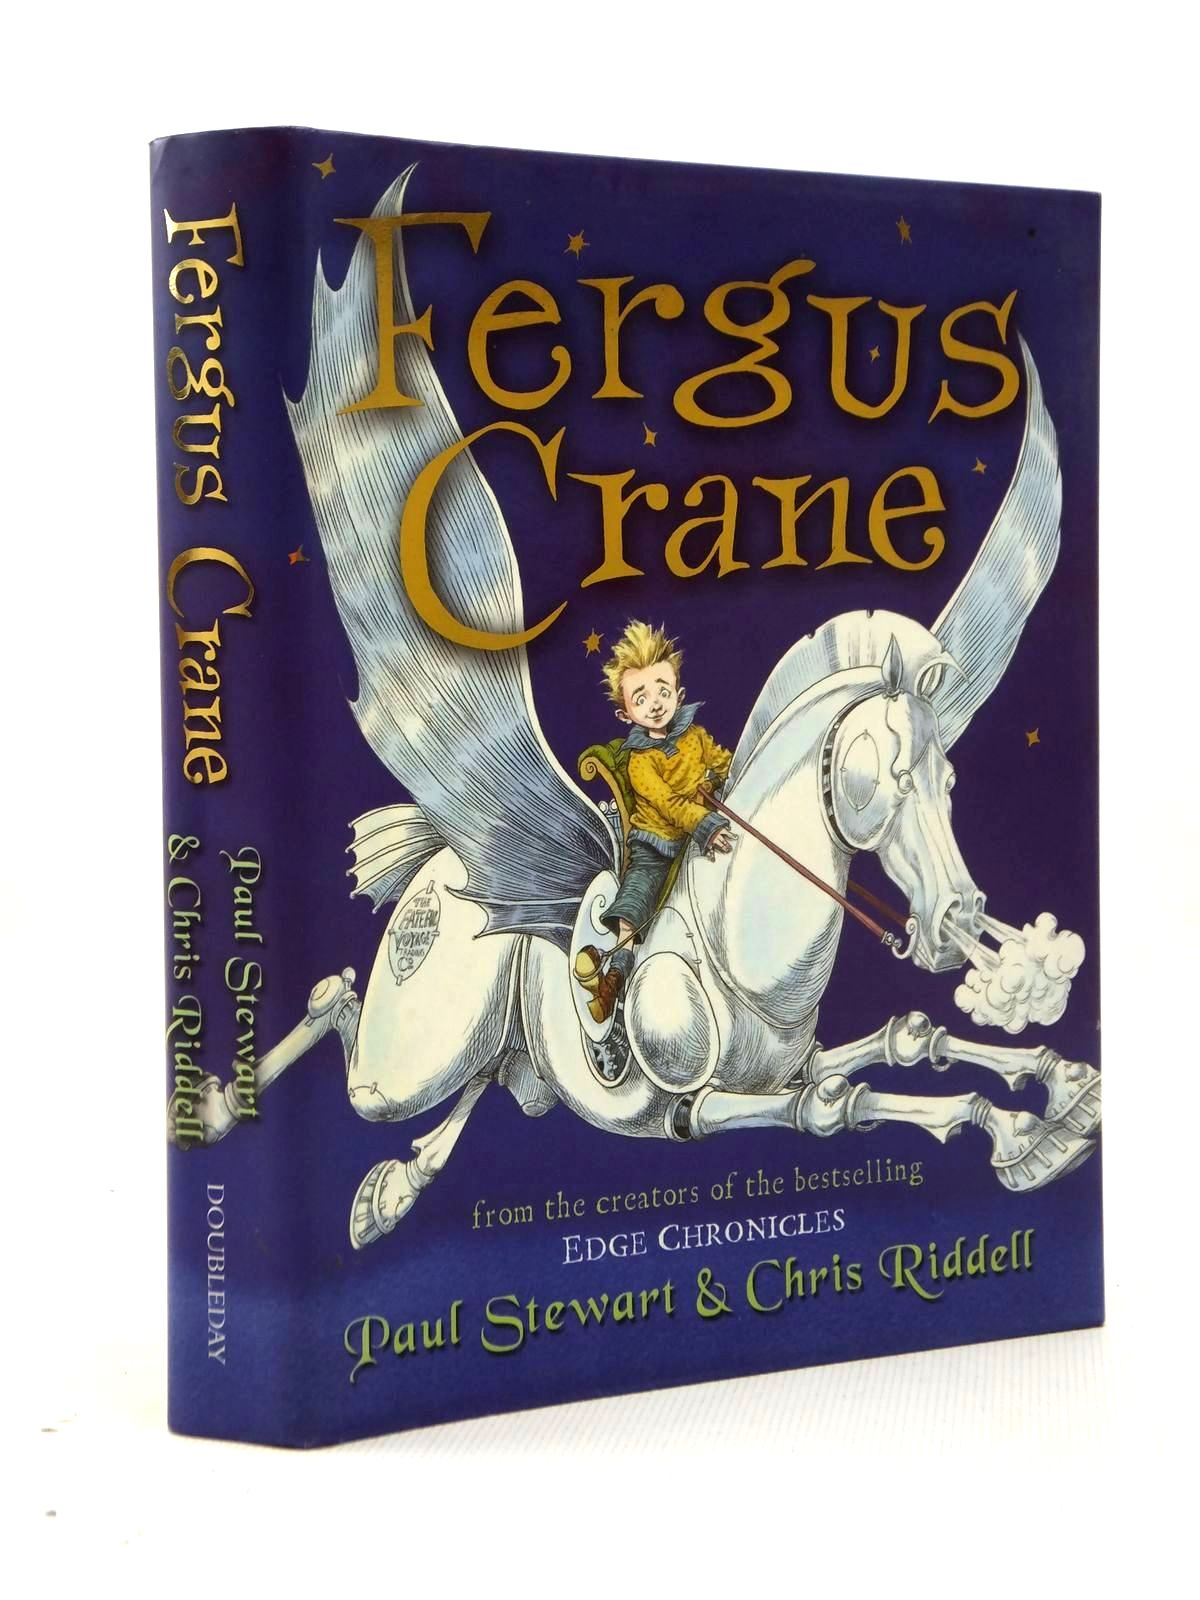 Photo of FERGUS CRANE written by Stewart, Paul illustrated by Riddell, Chris published by Doubleday (STOCK CODE: 1208833)  for sale by Stella & Rose's Books